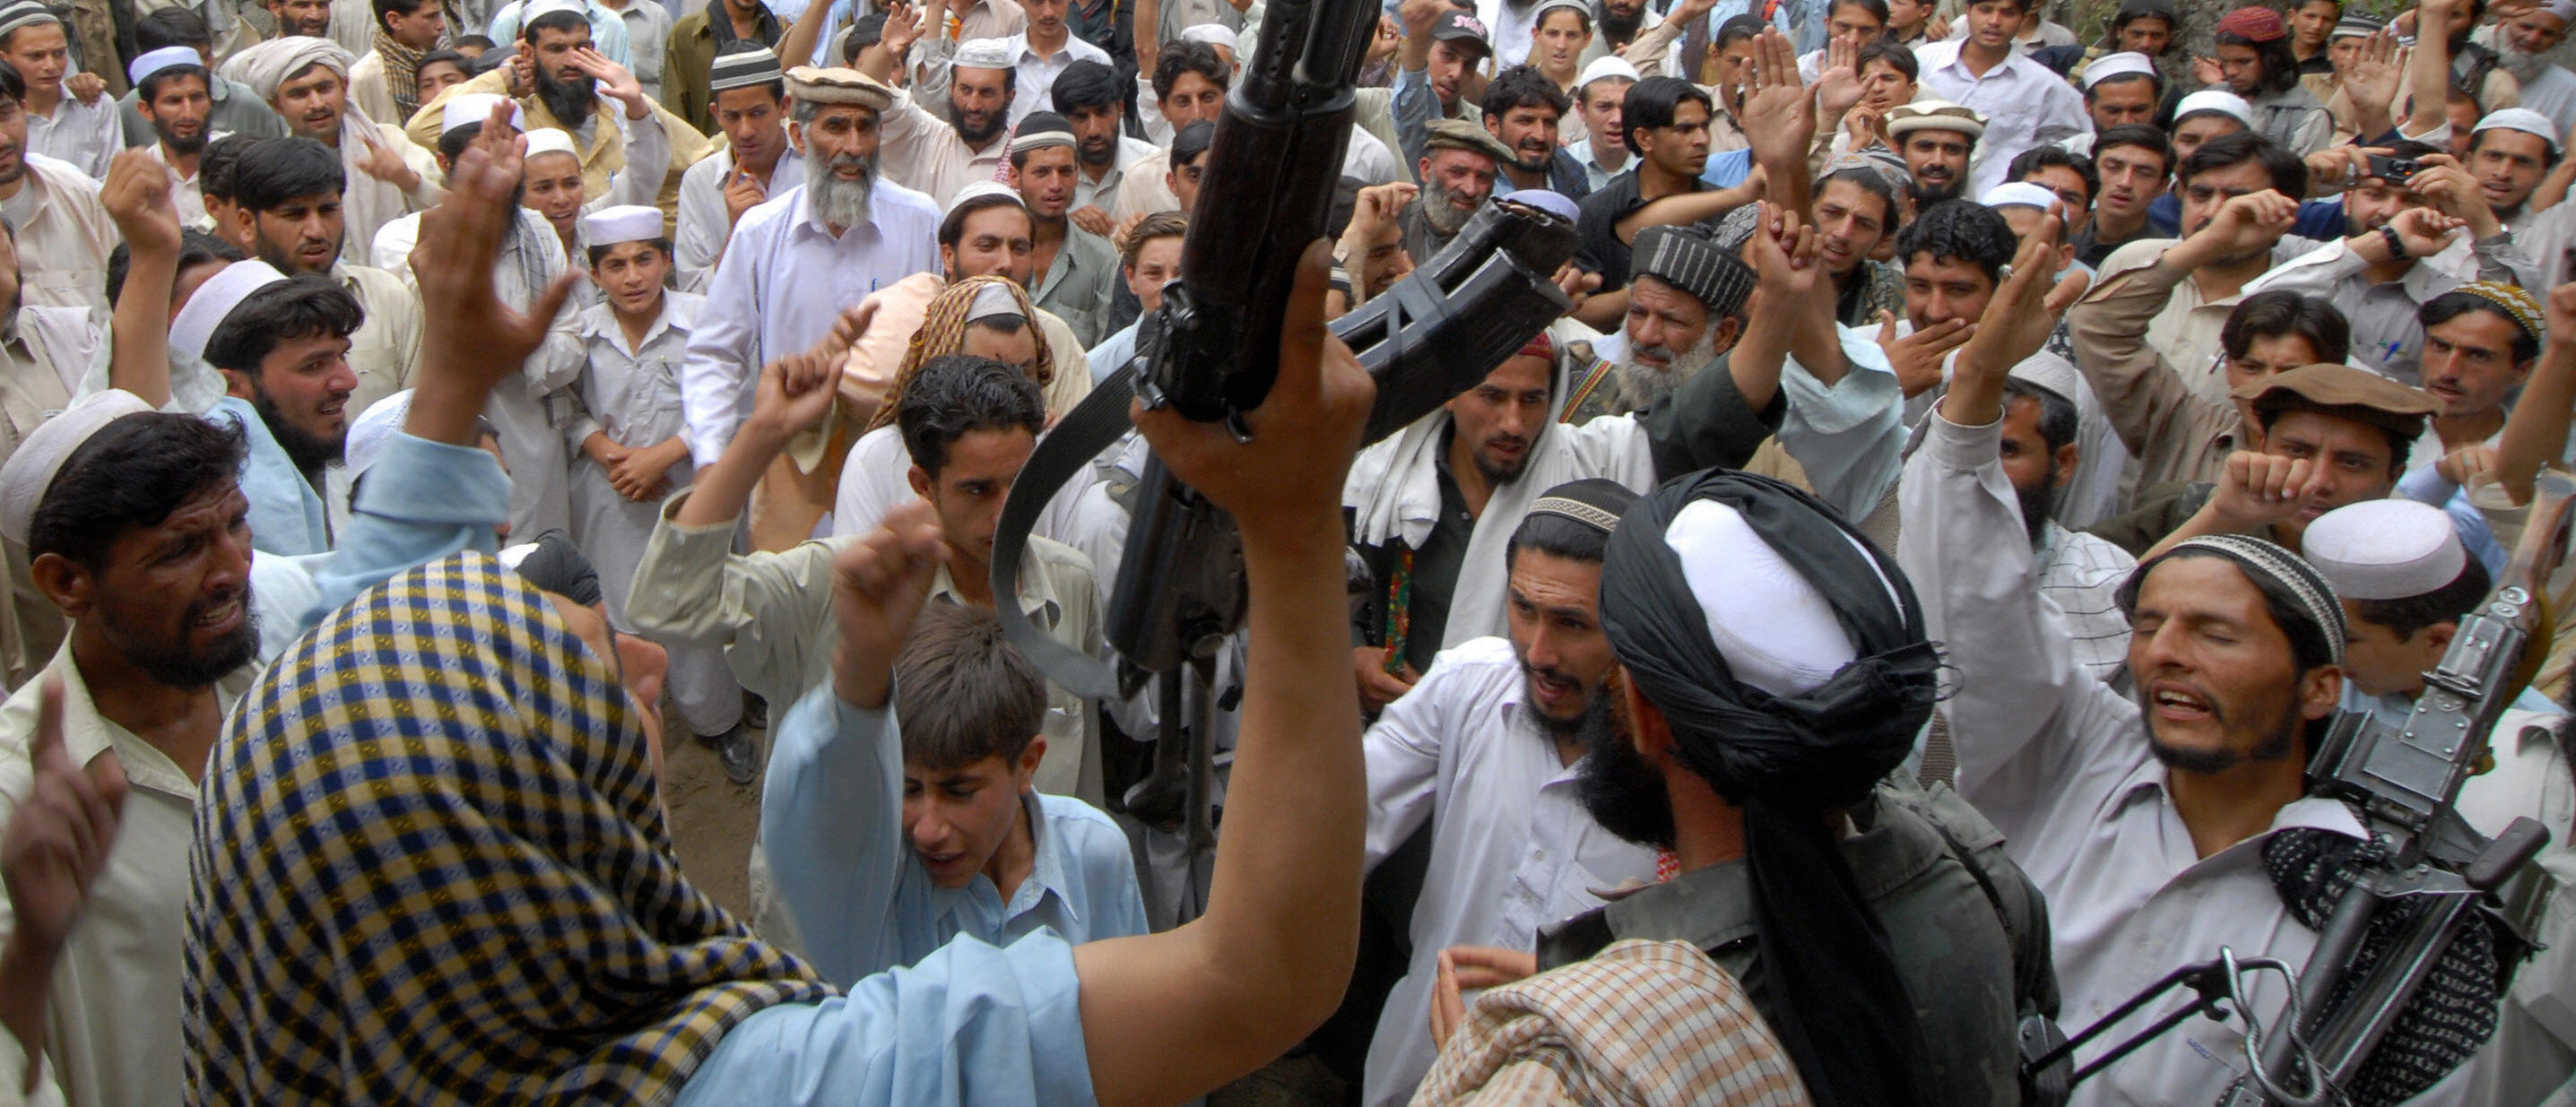 Pakistani alleged Taliban supporters chant anti-US slogans as they gather at the site of a US missile strike in Damadola village in the northwestern Bajaur tribal district which borders Afghanistan's volatile Kunar province, on May 15, 2008. Pakistani militants on May 15 accused the United States of carrying out a missile strike in the country's lawless tribal region and vowed to avenge the attack, which killed at least 12 people. AFP PHOTO/Tariq MAHMOOD (Photo credit should read TARIQ MAHMOOD/AFP/Getty Images)